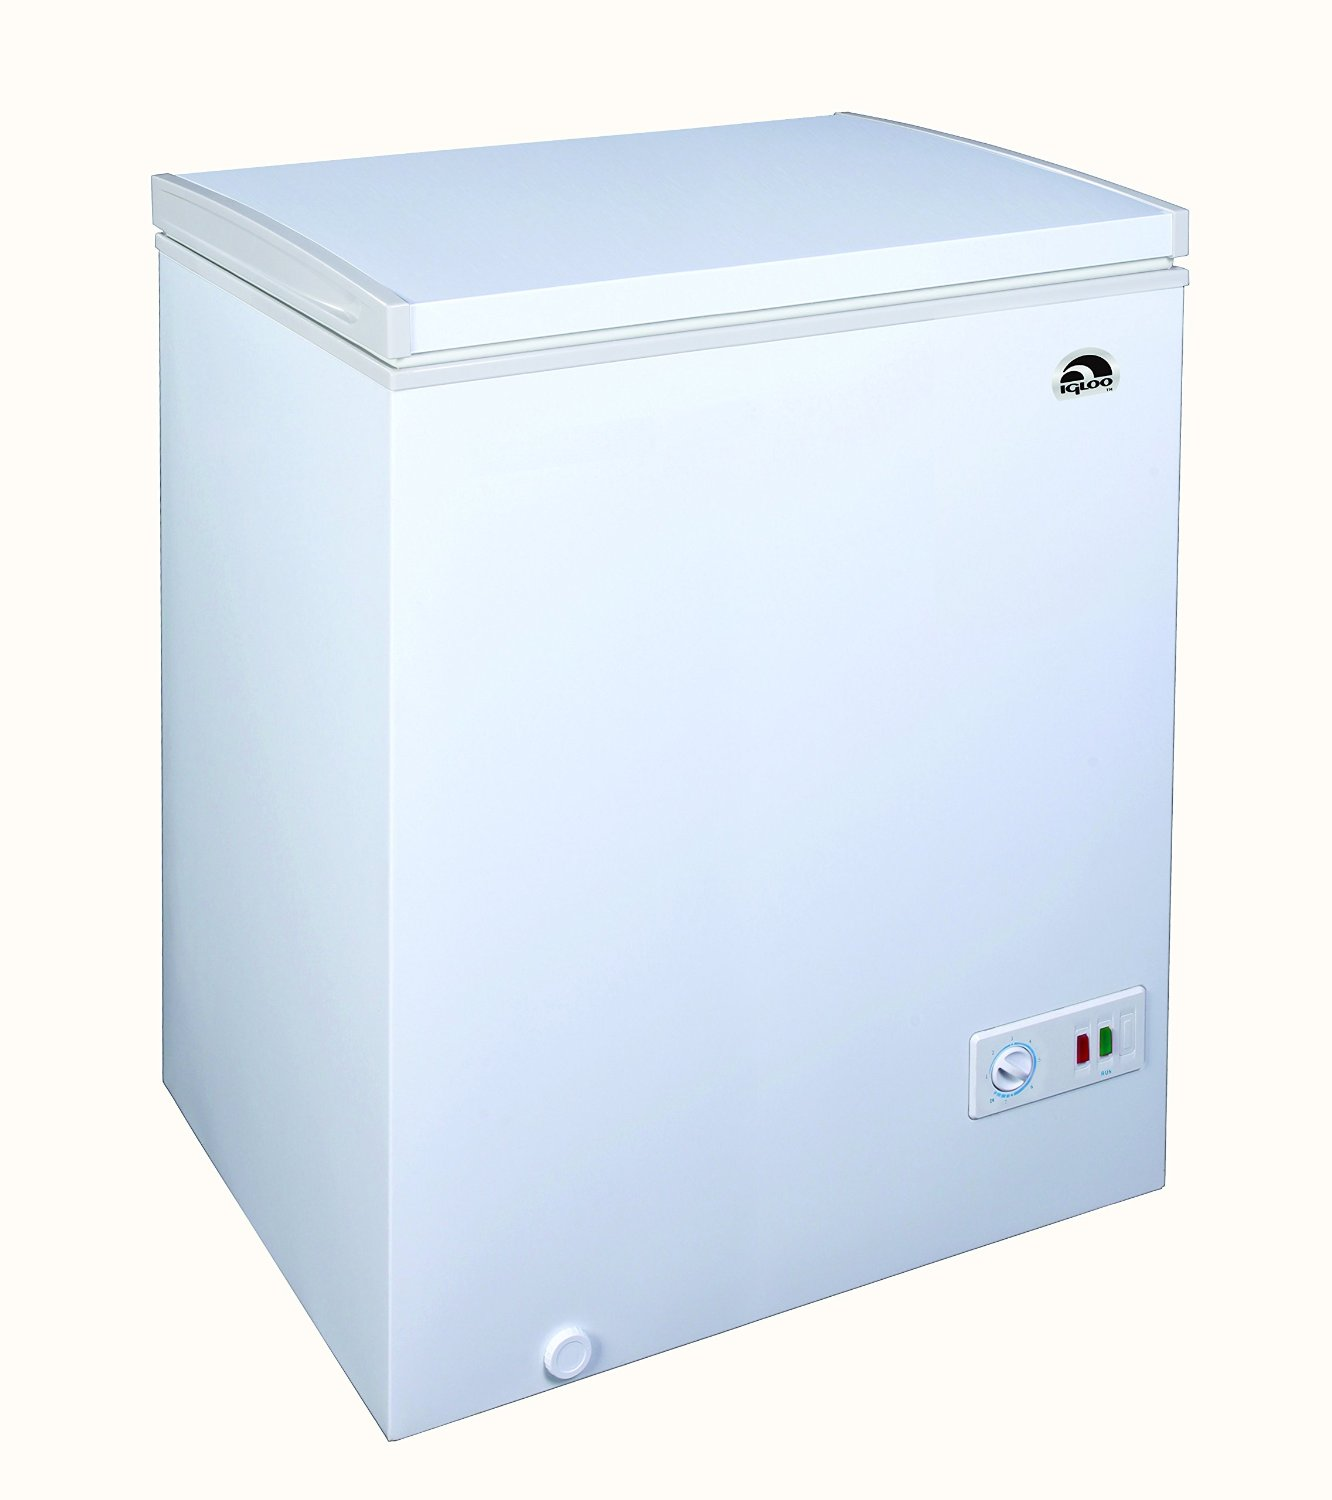 5.1 Cubic Foot Chest Freezer